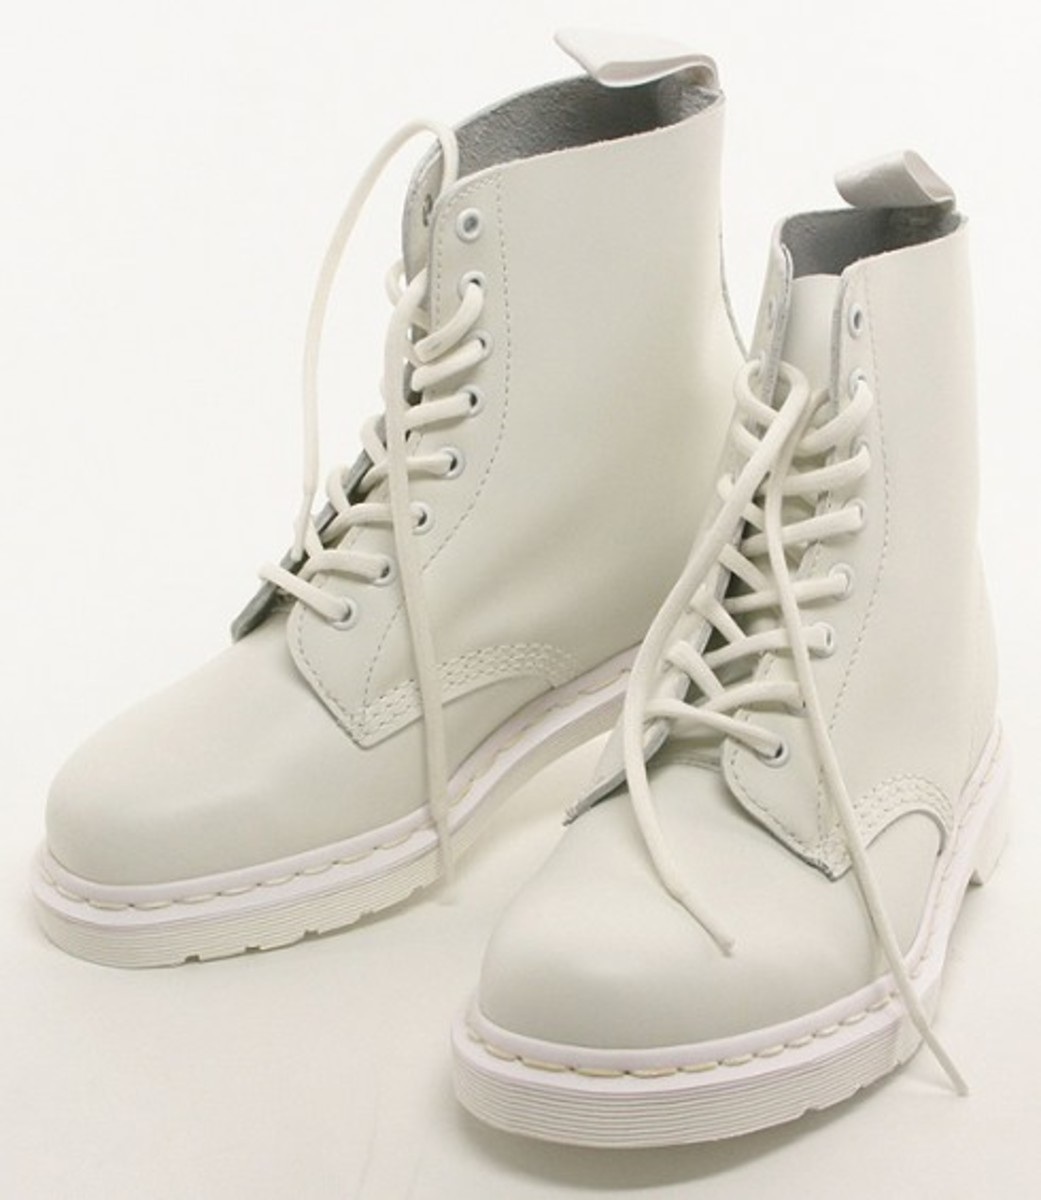 Dr. Martens - MONOTONE Collection